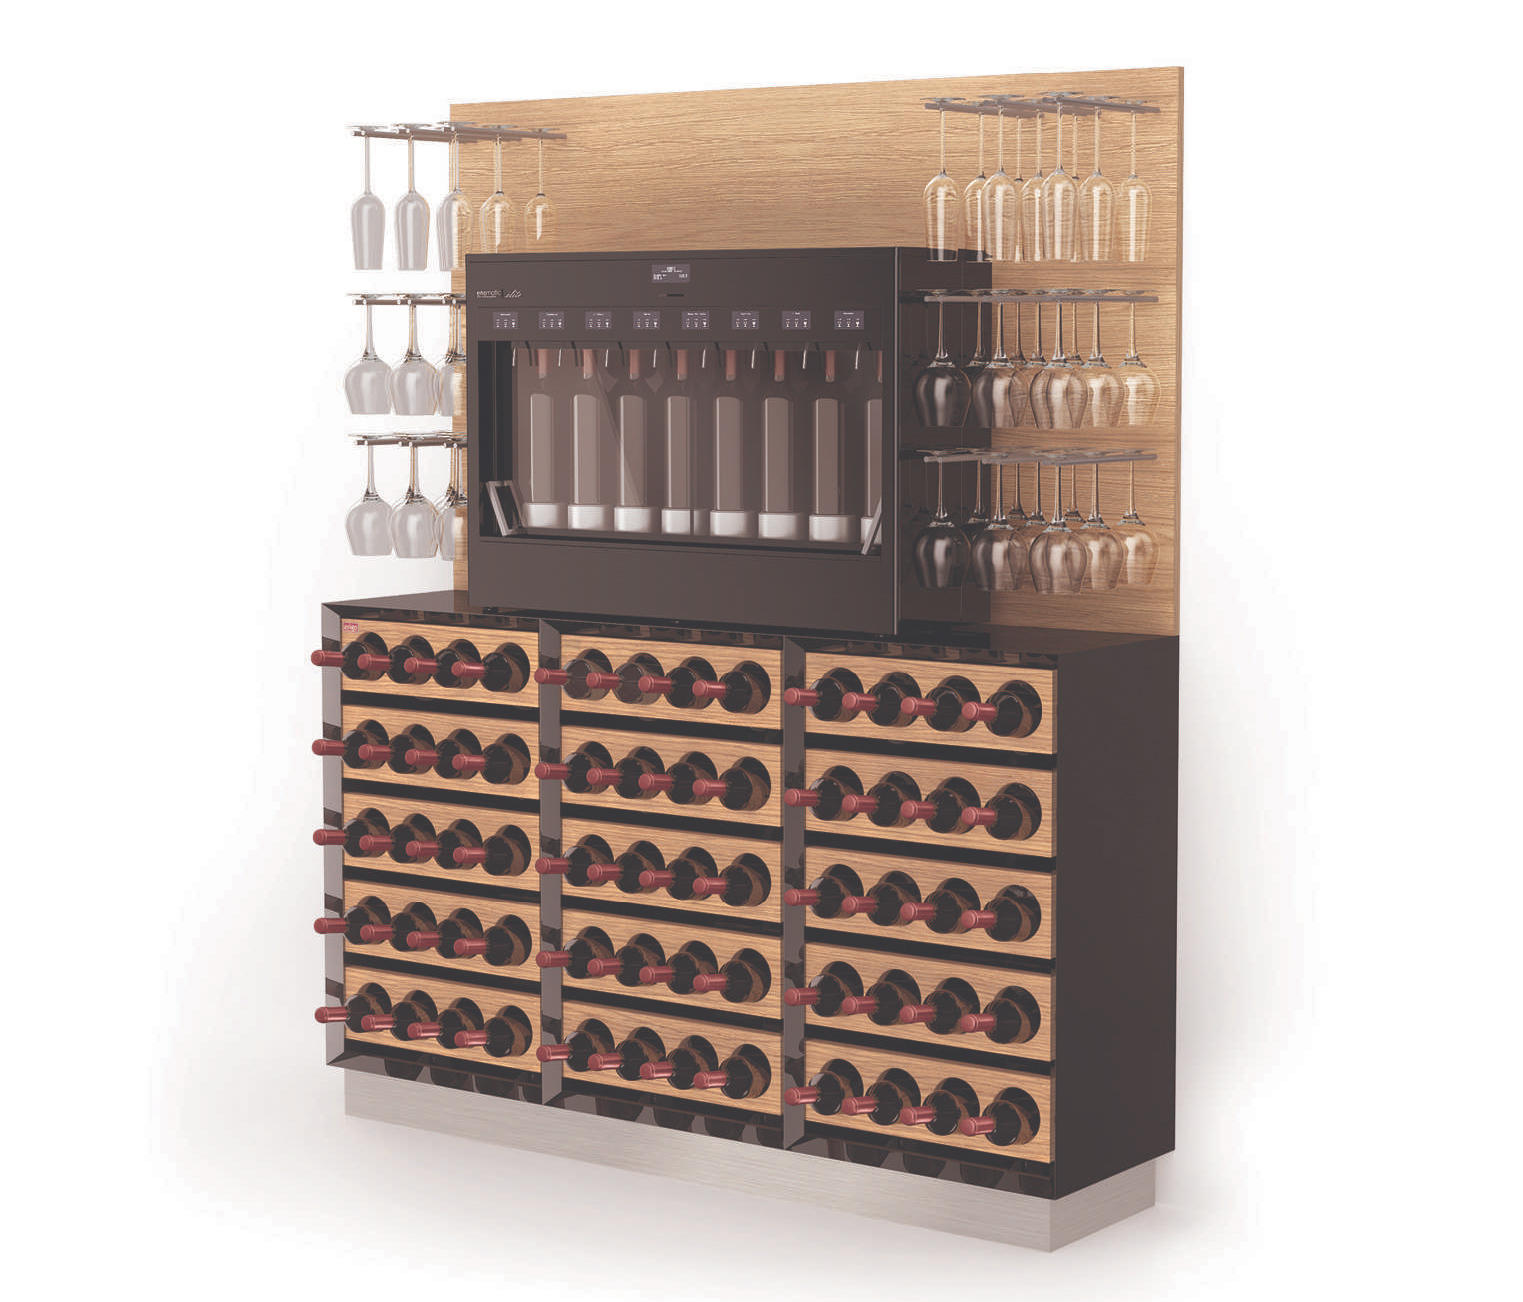 Esigo WSS1 Wine Rack Cabinet By ESIGO | Wine Racks